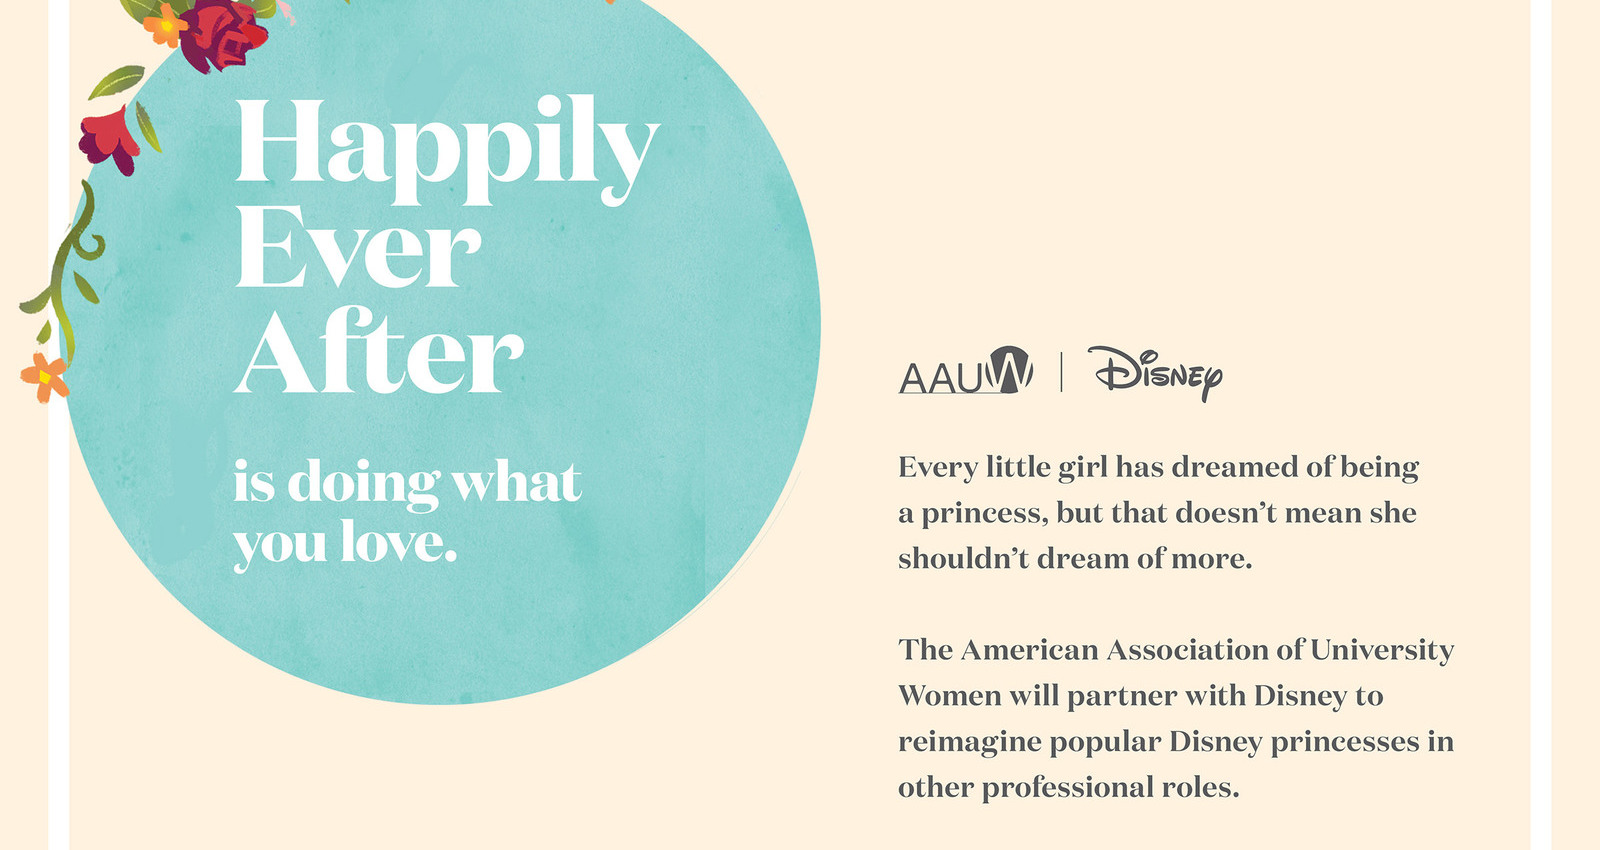 Happily Ever After Is Doing What You Love